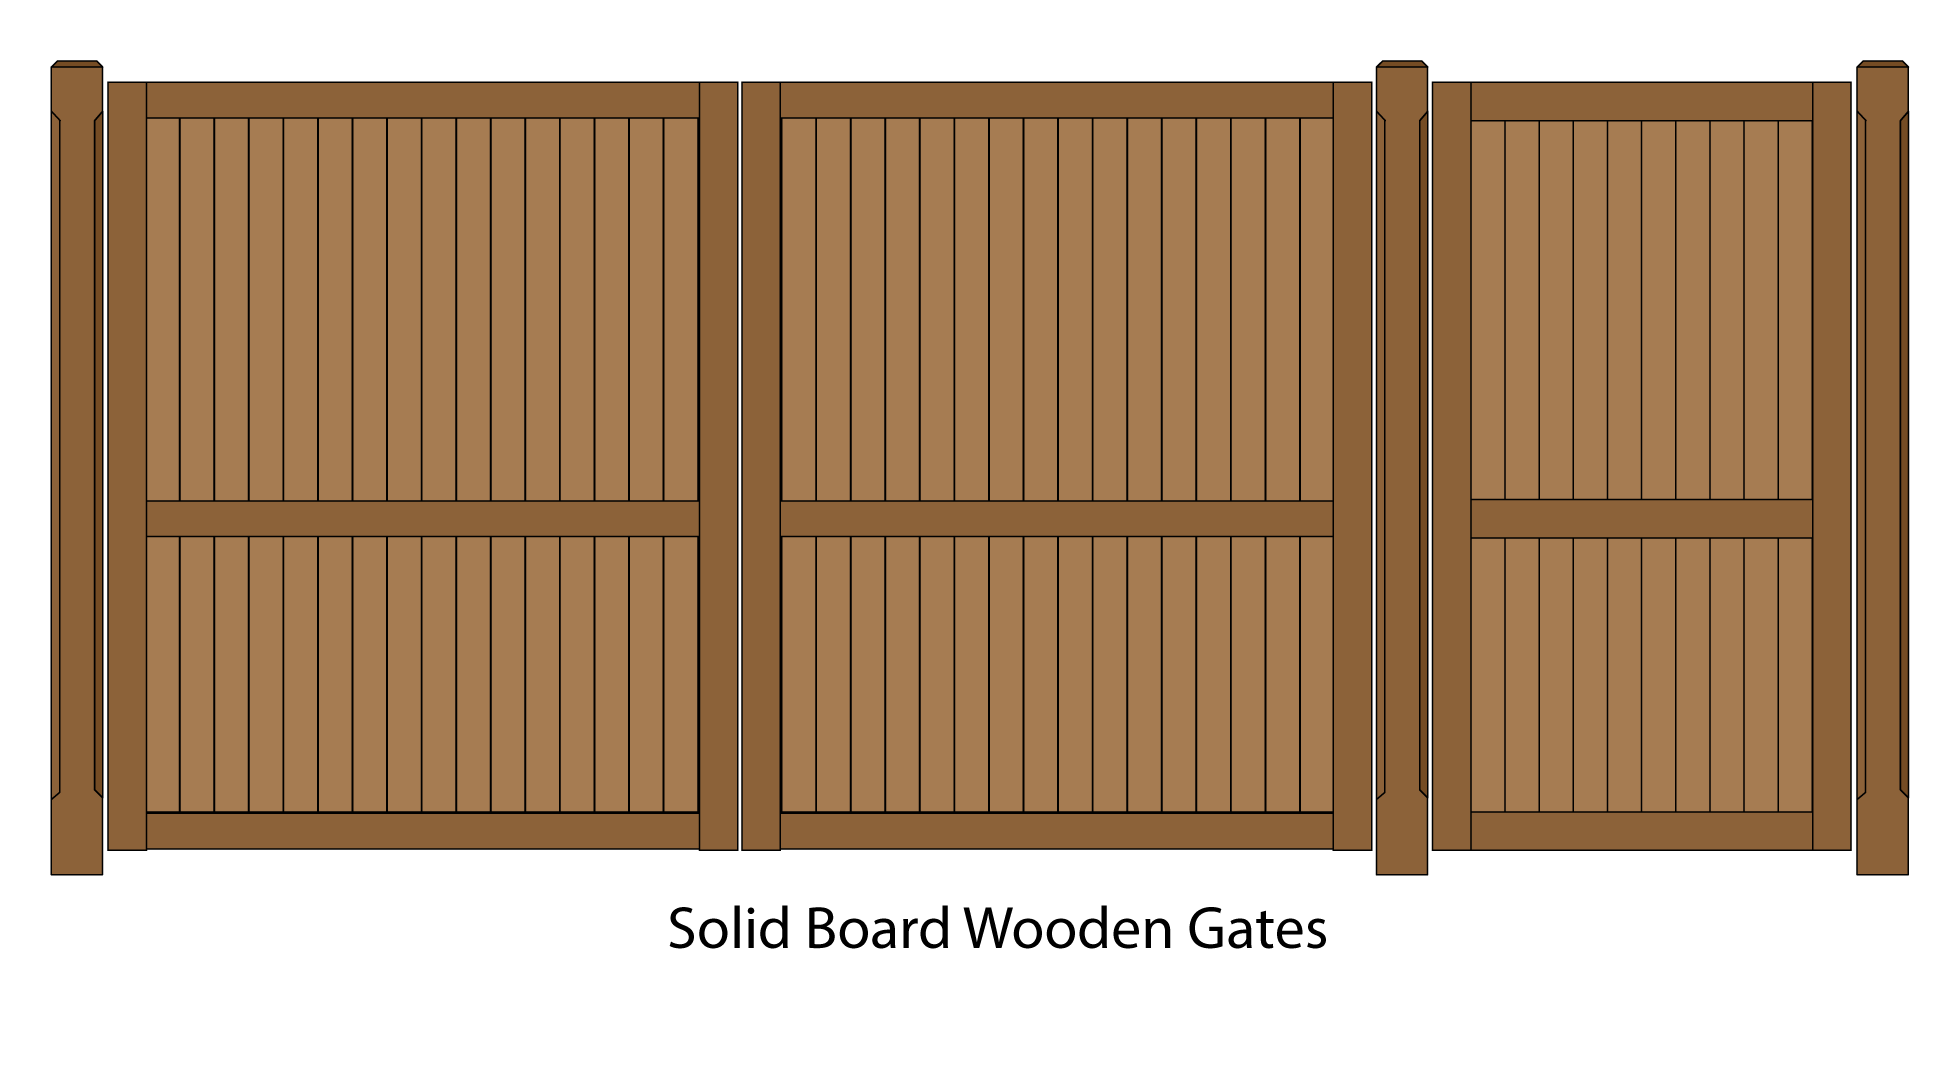 Solid Board Wooden driveway and pedestrian entrance gates